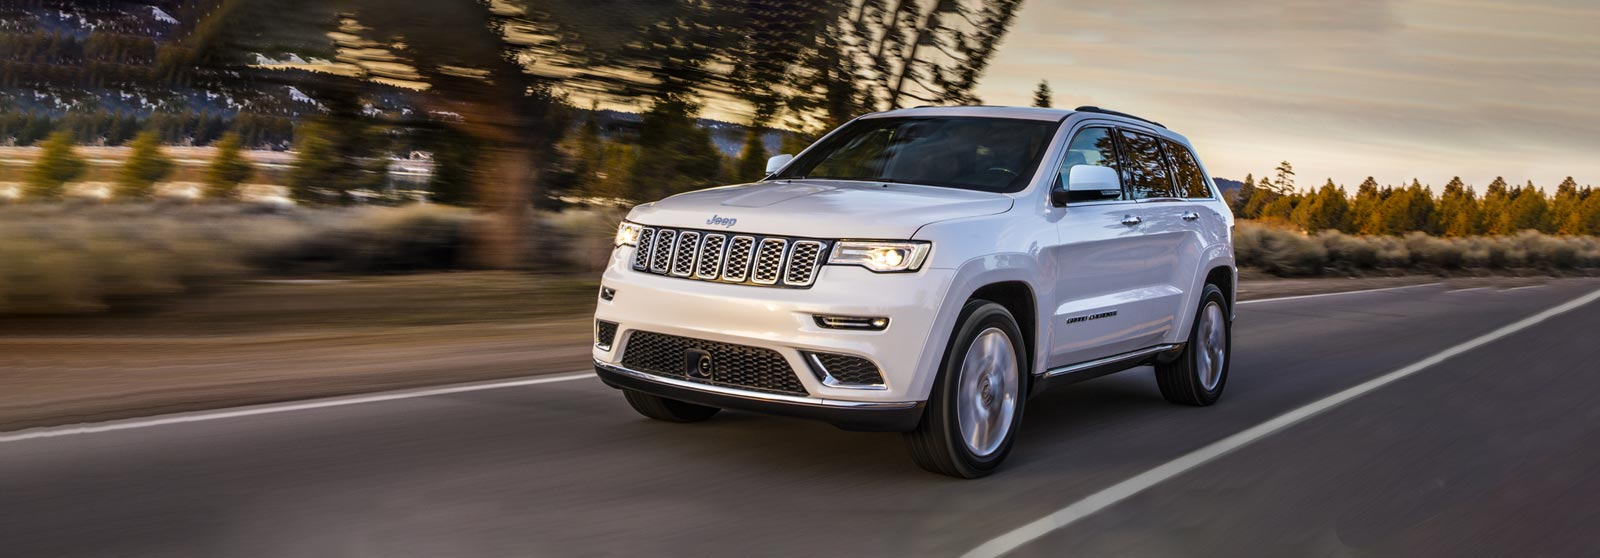 New Jeep Cherokee >> New Grand Cherokee The Most Awarded Suv Jeep Uk